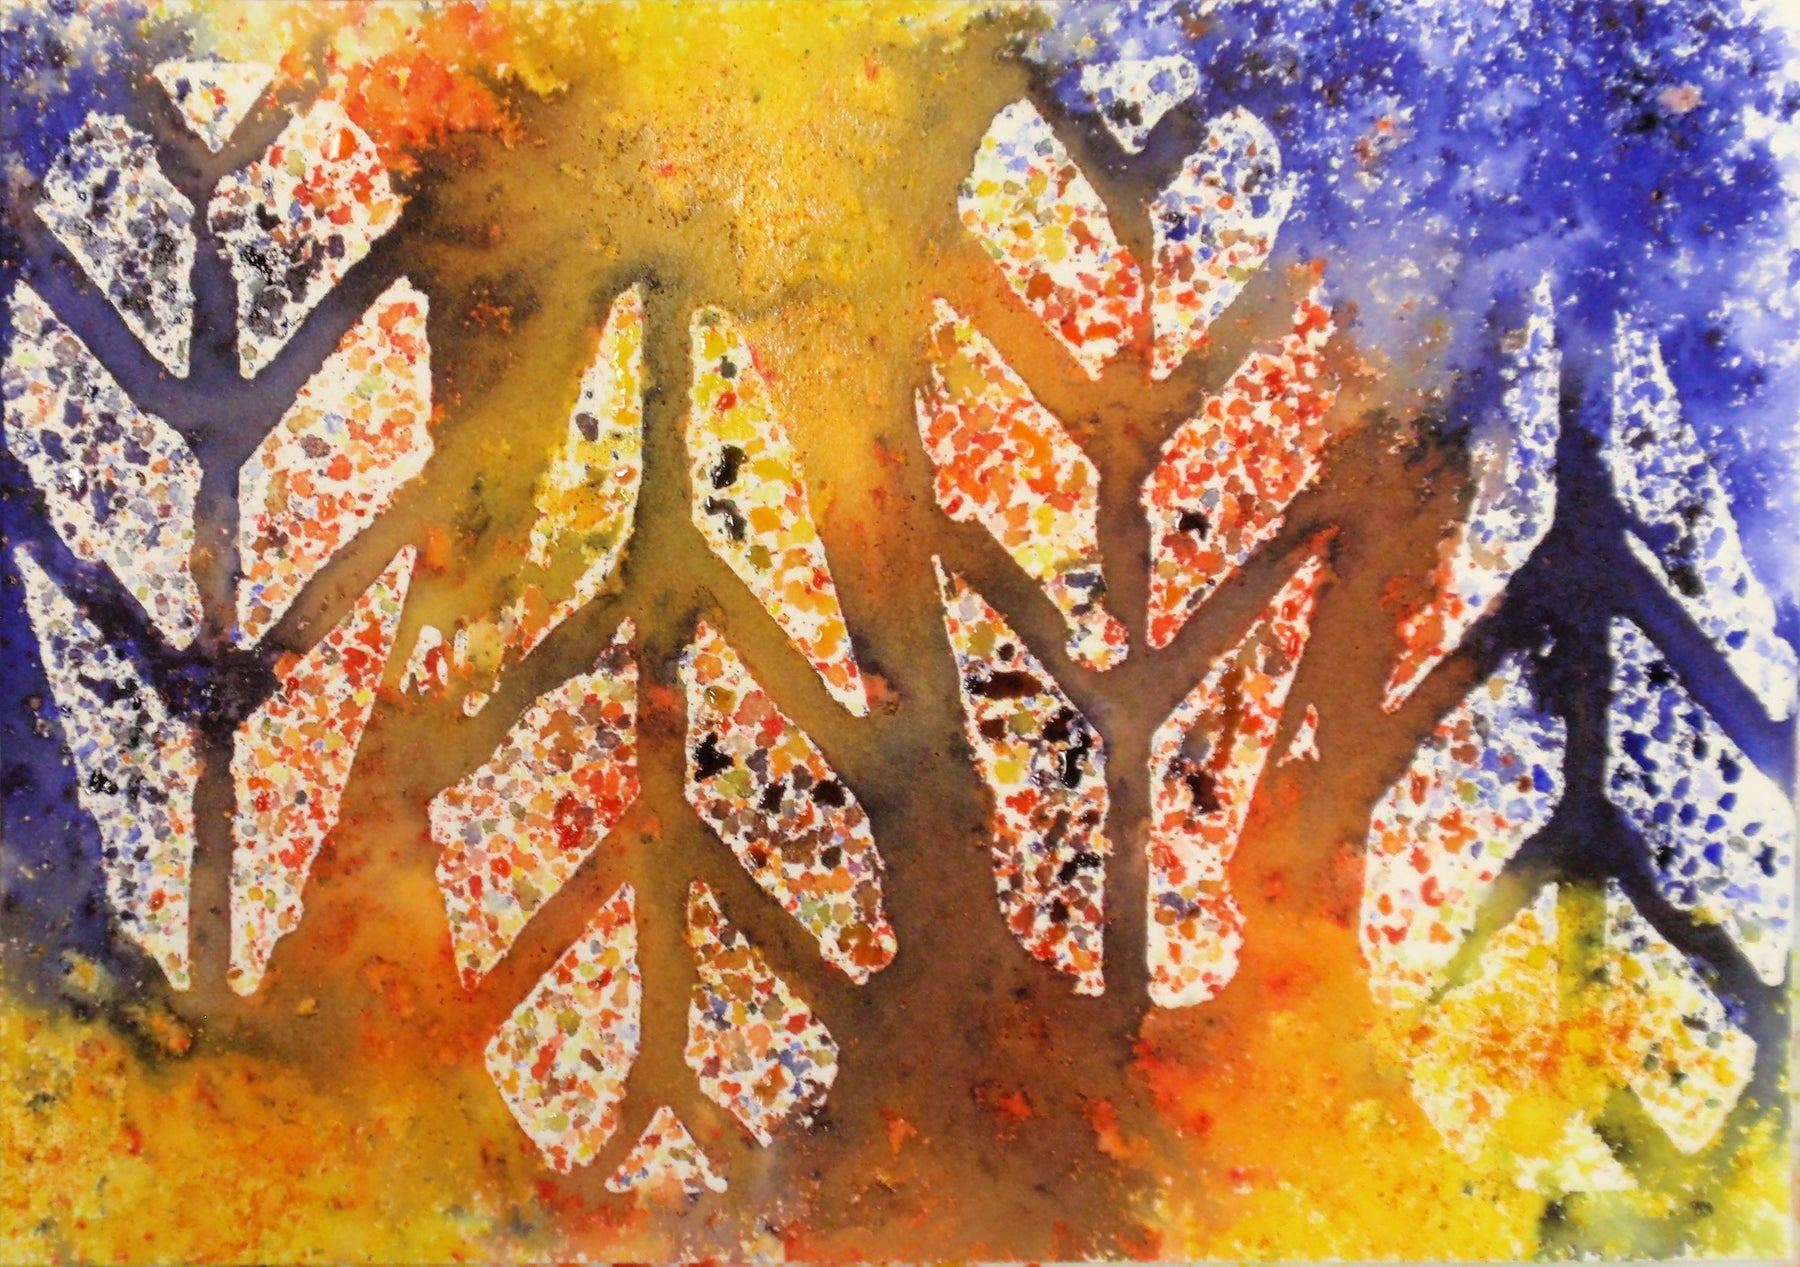 Use Brusho Crystals and Watercolor Resist to Make Colorful Abstract Cards